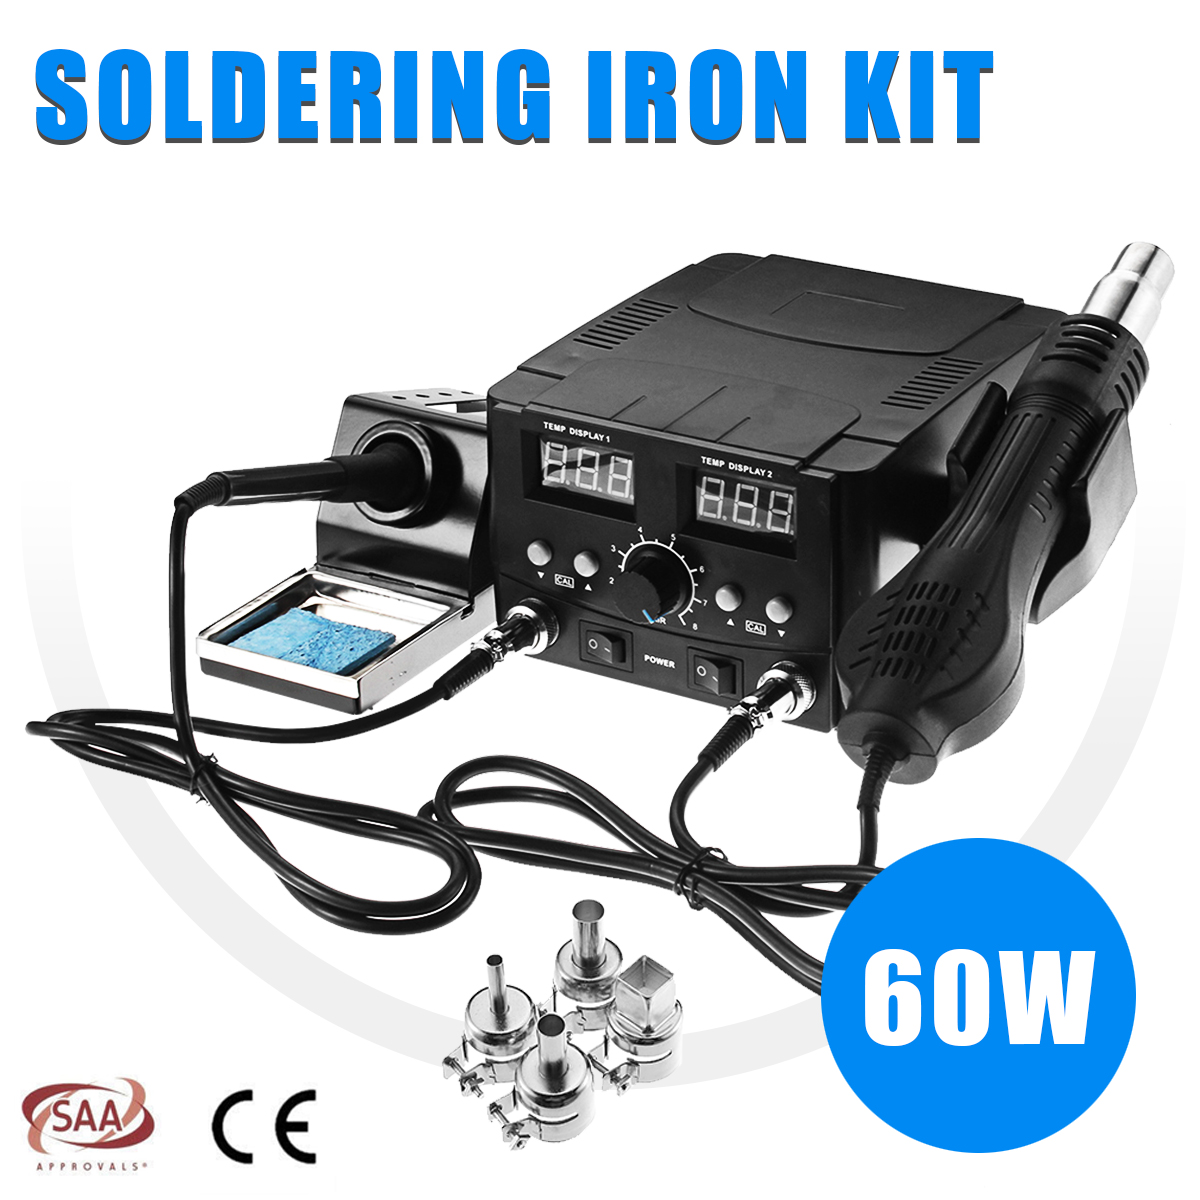 2 In1 Digital Hot Air Rework Soldering Station Soldering Iron Solder Rework Station SMD Desoldering Electric Welding Iron Tools h878a multifunction 110v hot air desoldering station with electric soldering iron and soldering iron stent for drying